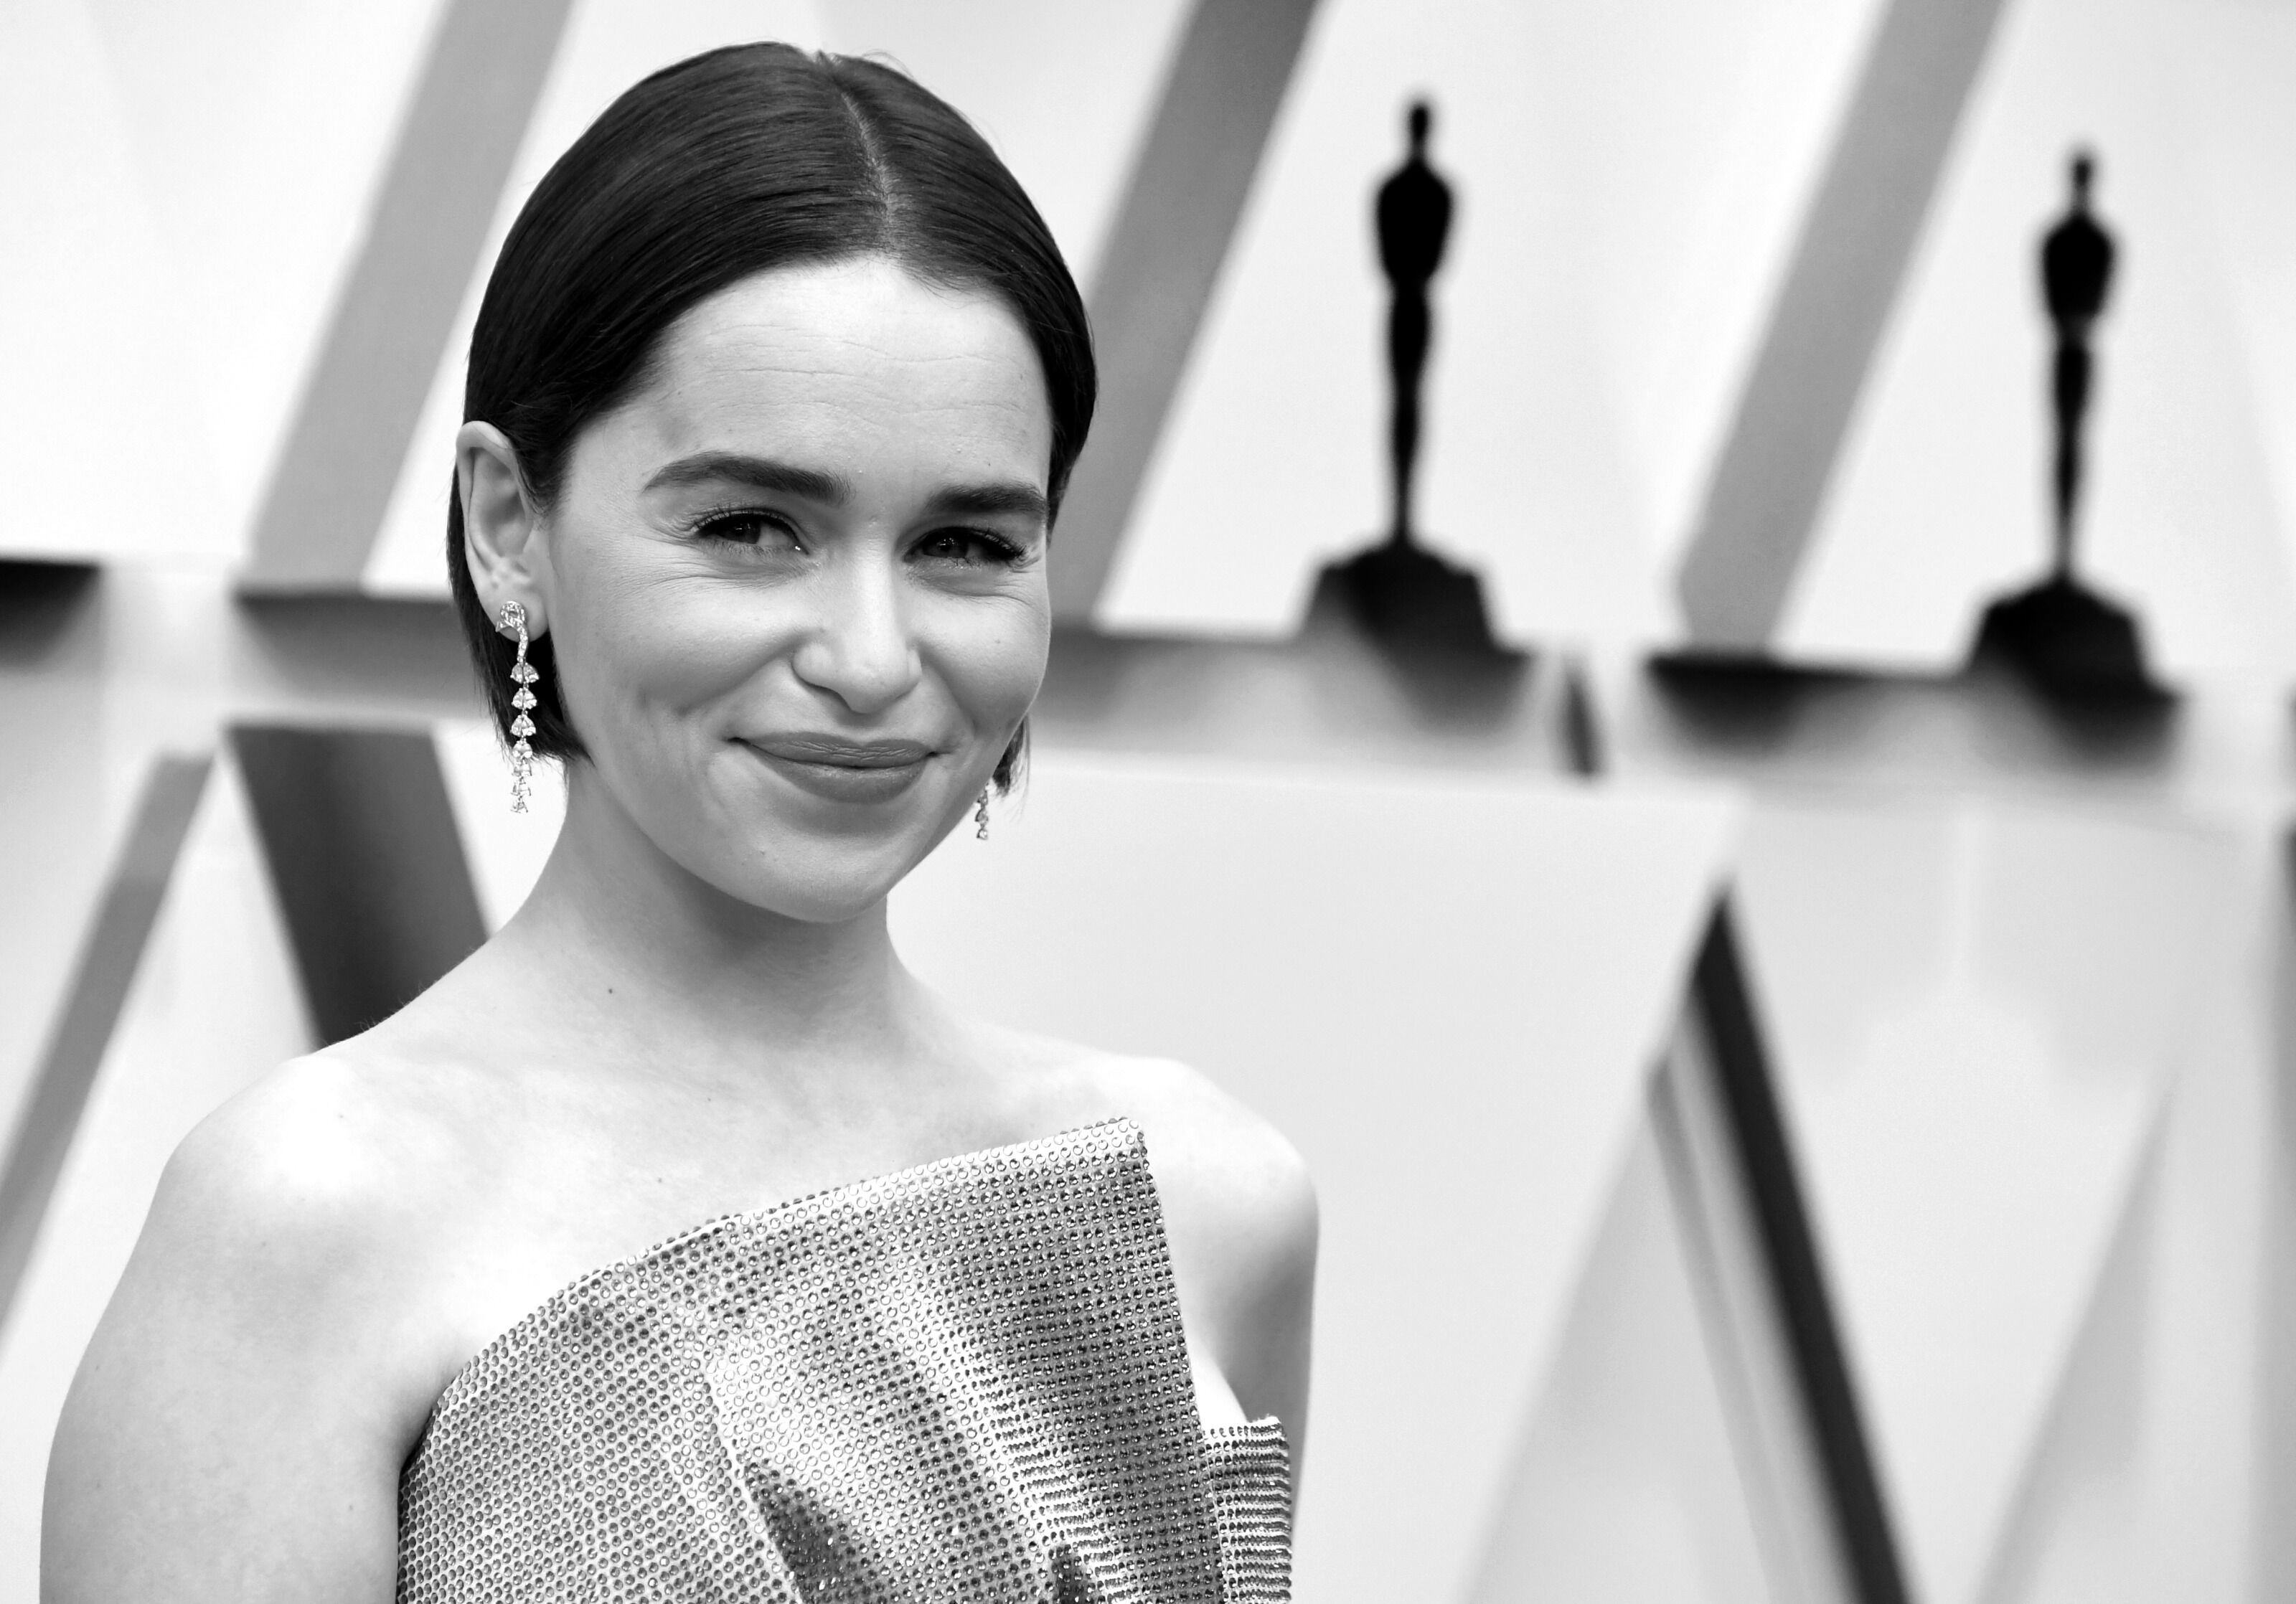 Emilia Clarke reveals she had brain surgeries in the early seasons of Game of Thrones